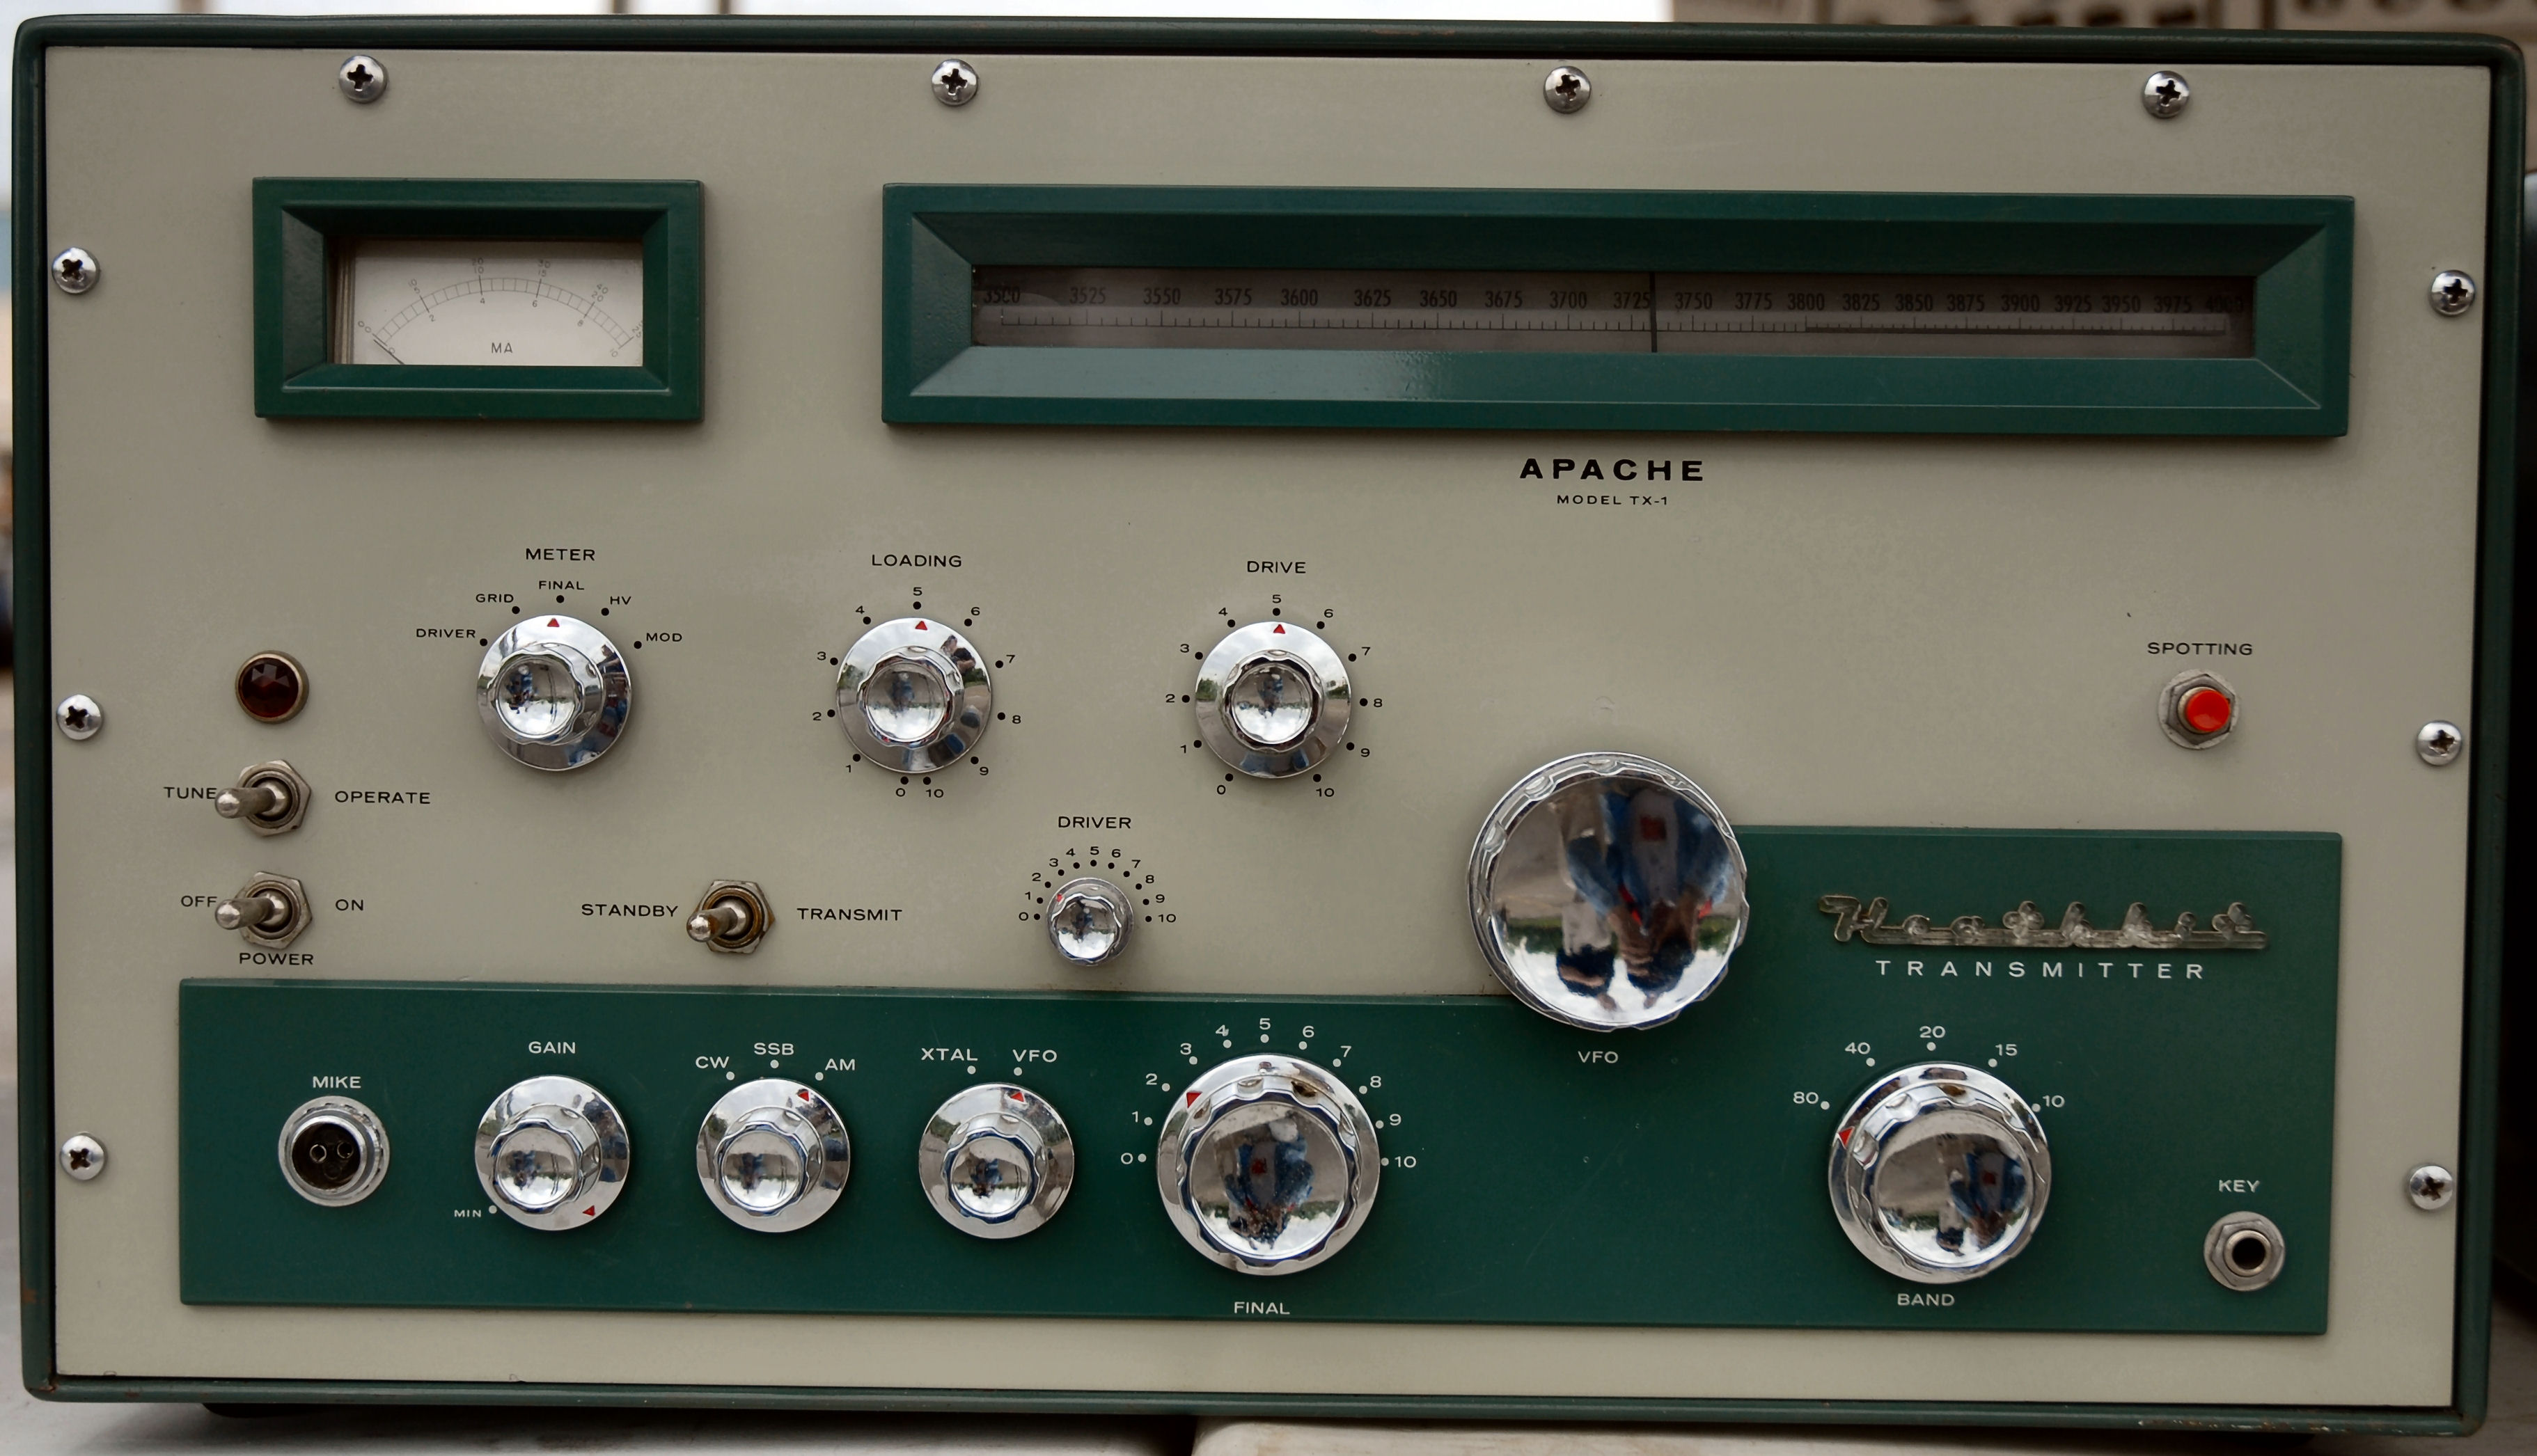 Dayton Heathkit Apache Tx on view